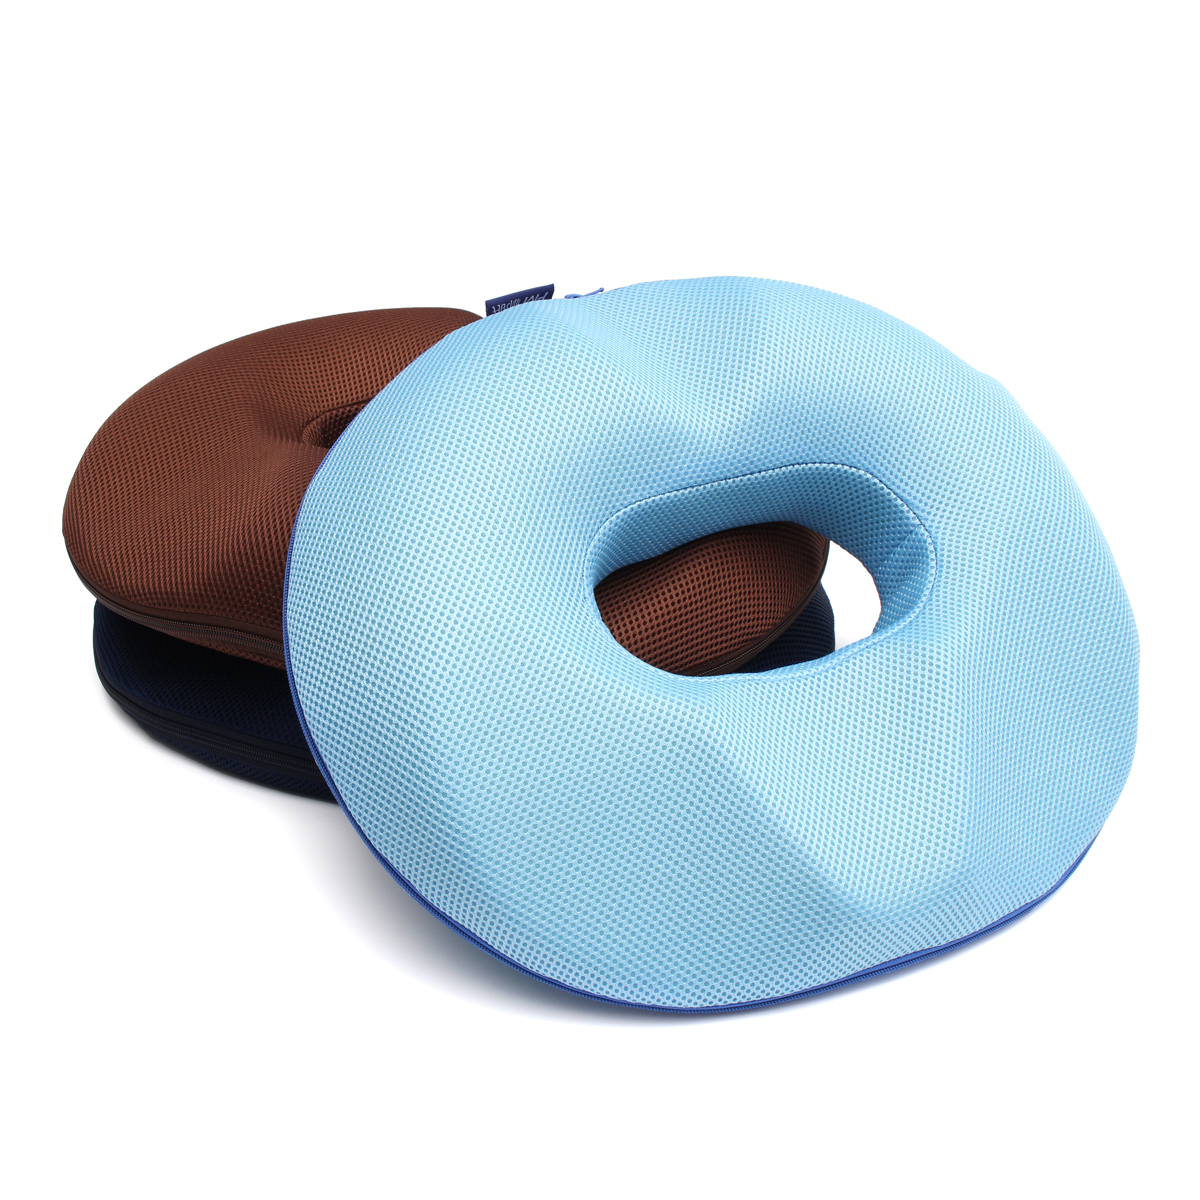 Memory Sponge Seat Cushion Slow Rebound Dual Comfort Office Home Chair Car Cushion Multi-color Selectable